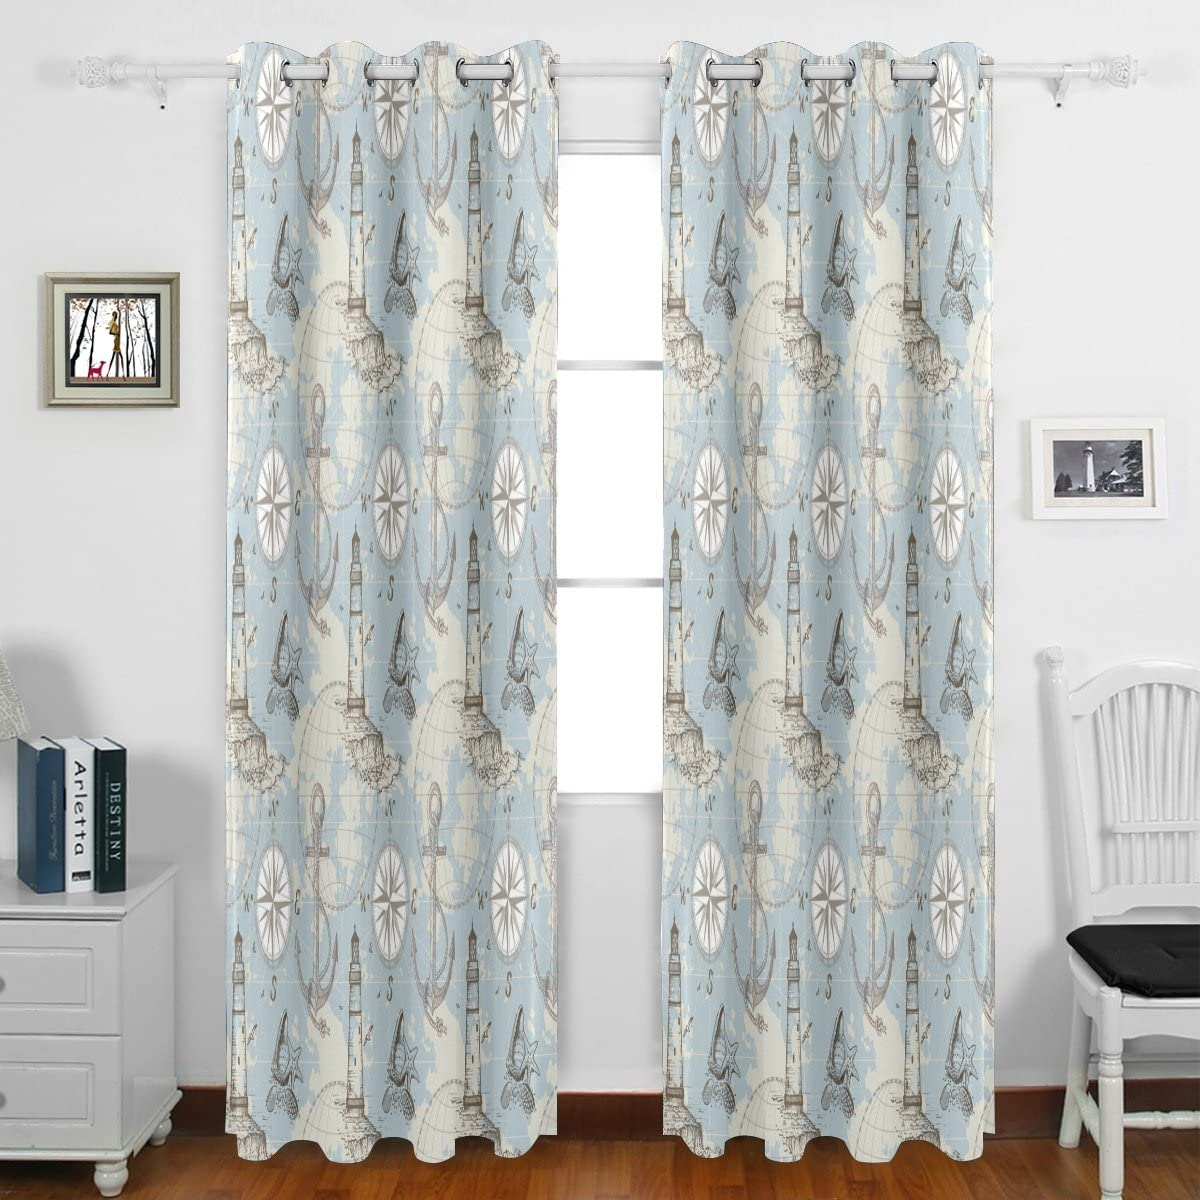 Nautical Anchor Helm Compass Map Starfish Pattern Ocean Theme Grommet Blackout Window Curtain Panels 55 w x 84 L Inches Long Set of 2,Window Treatment Drape for Living Room Bedroom Home Decor